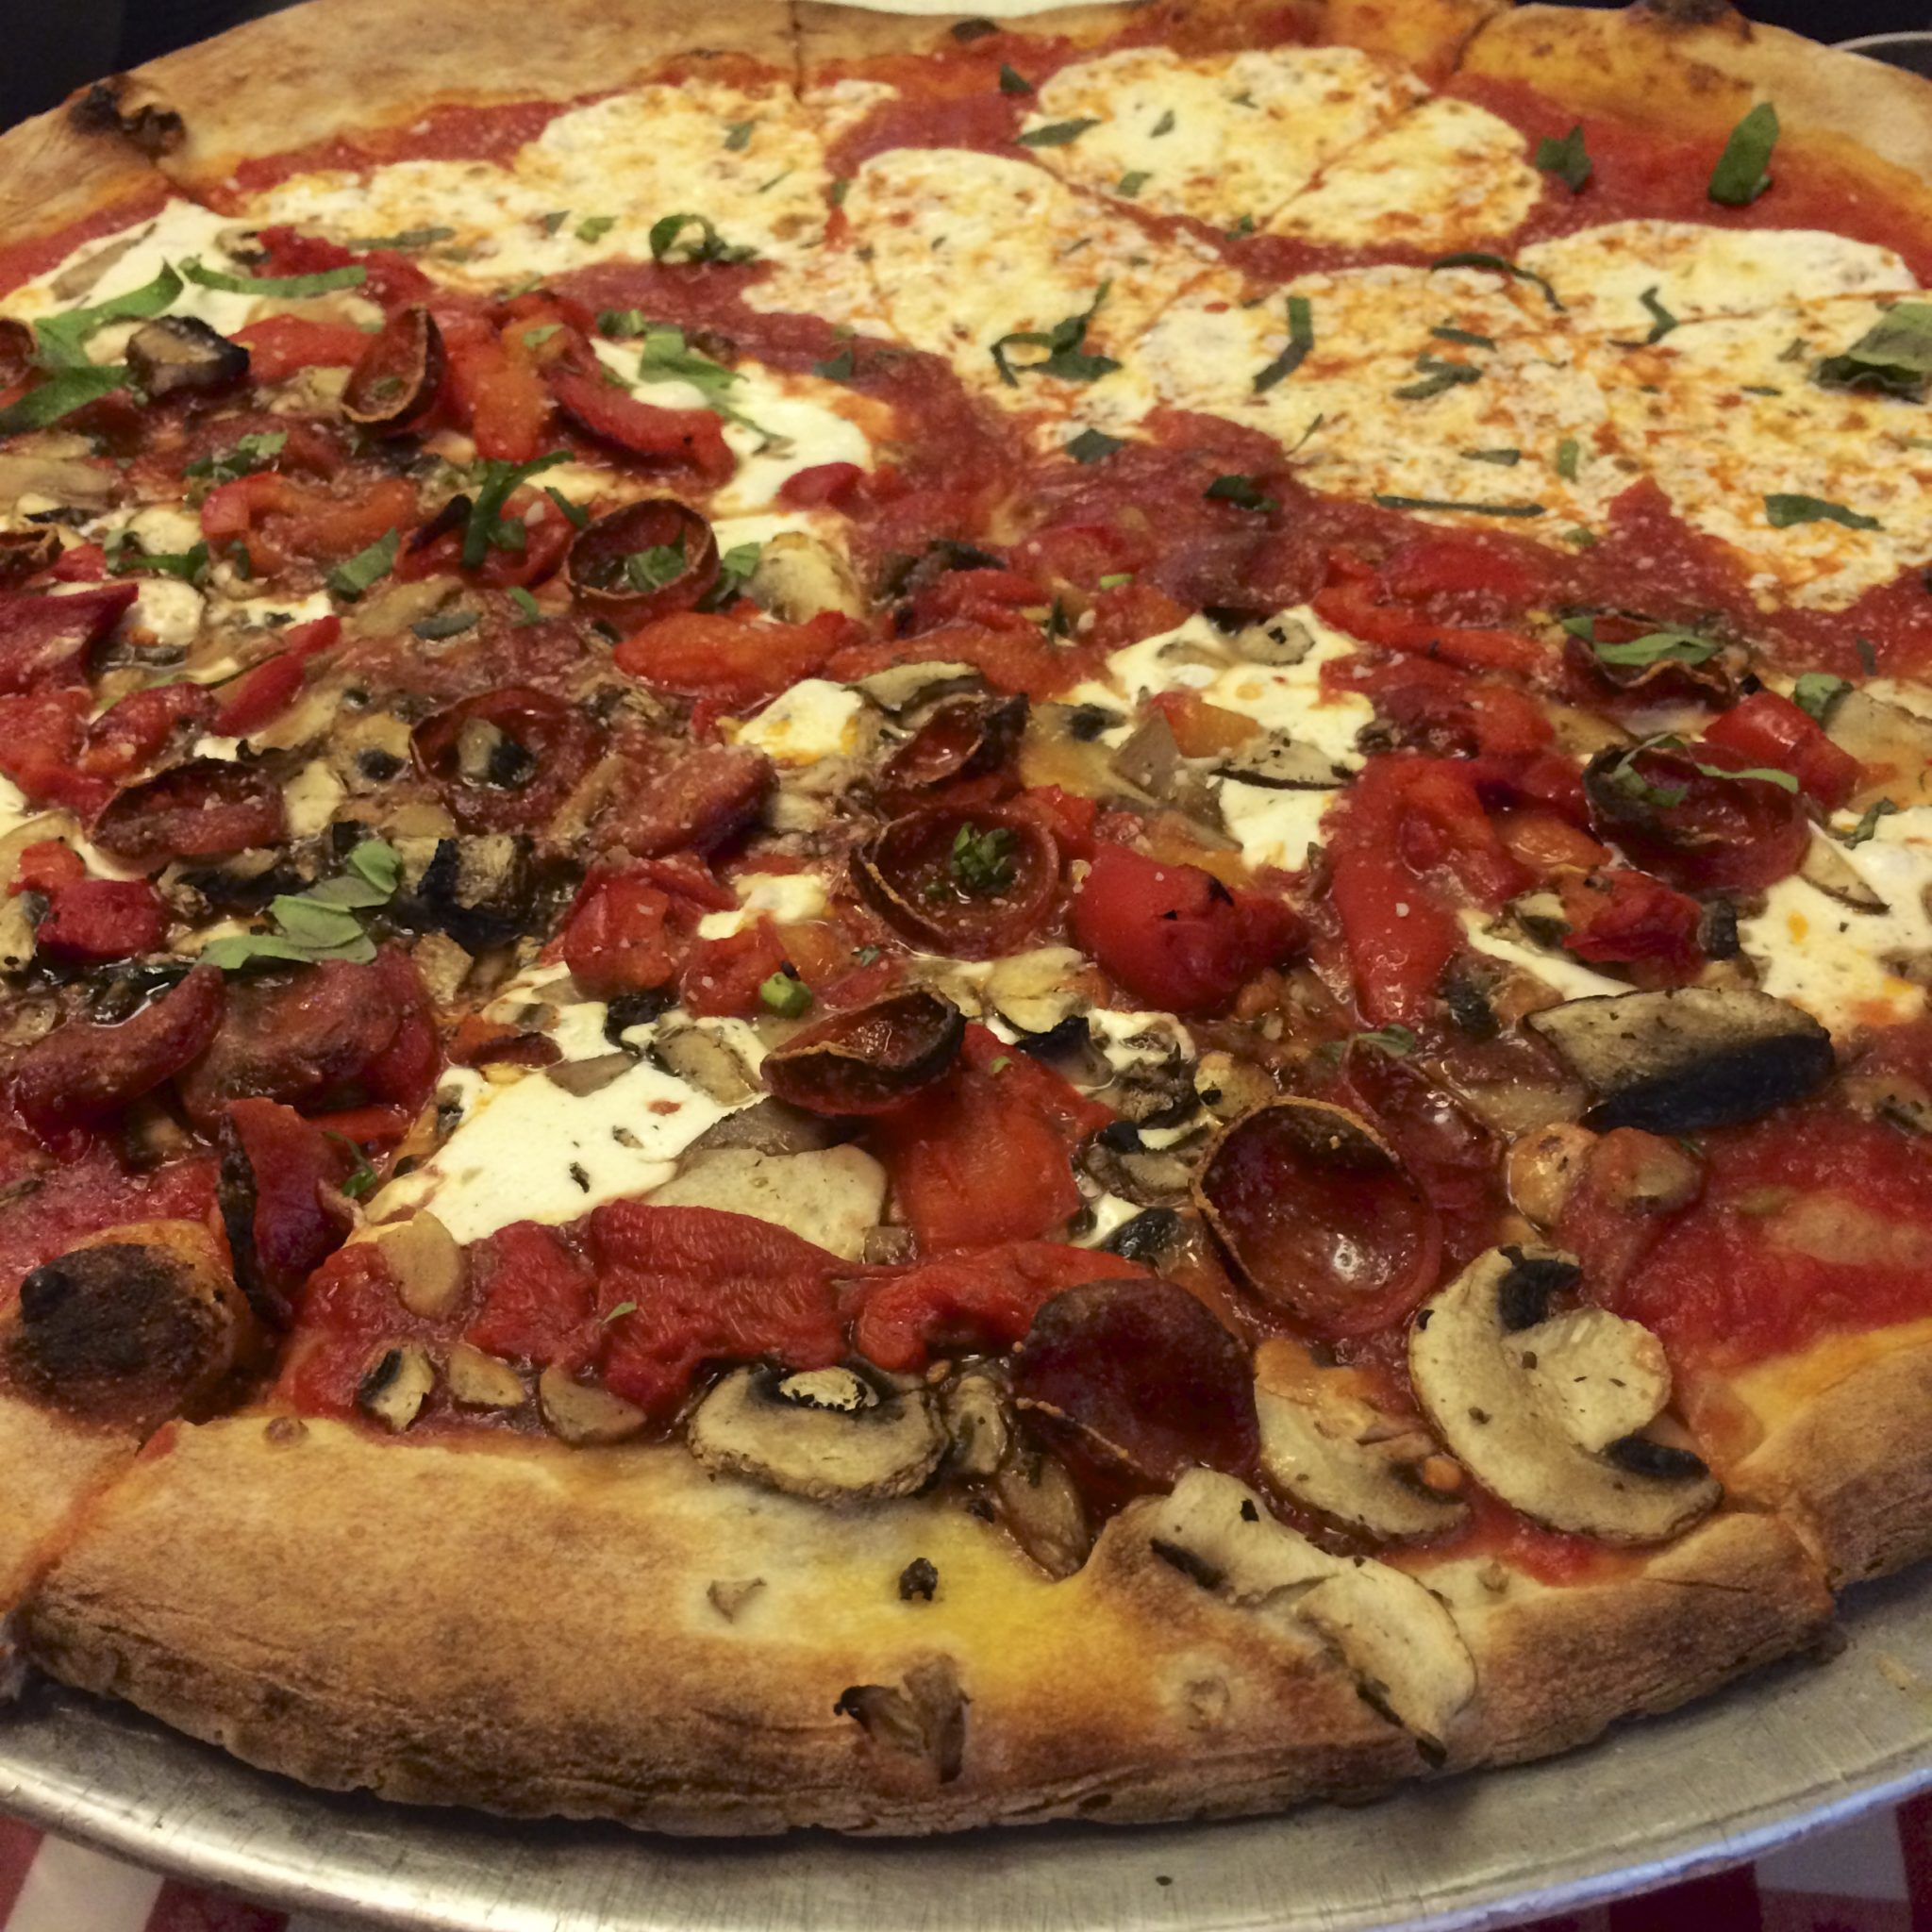 Pizza from Little Italy.